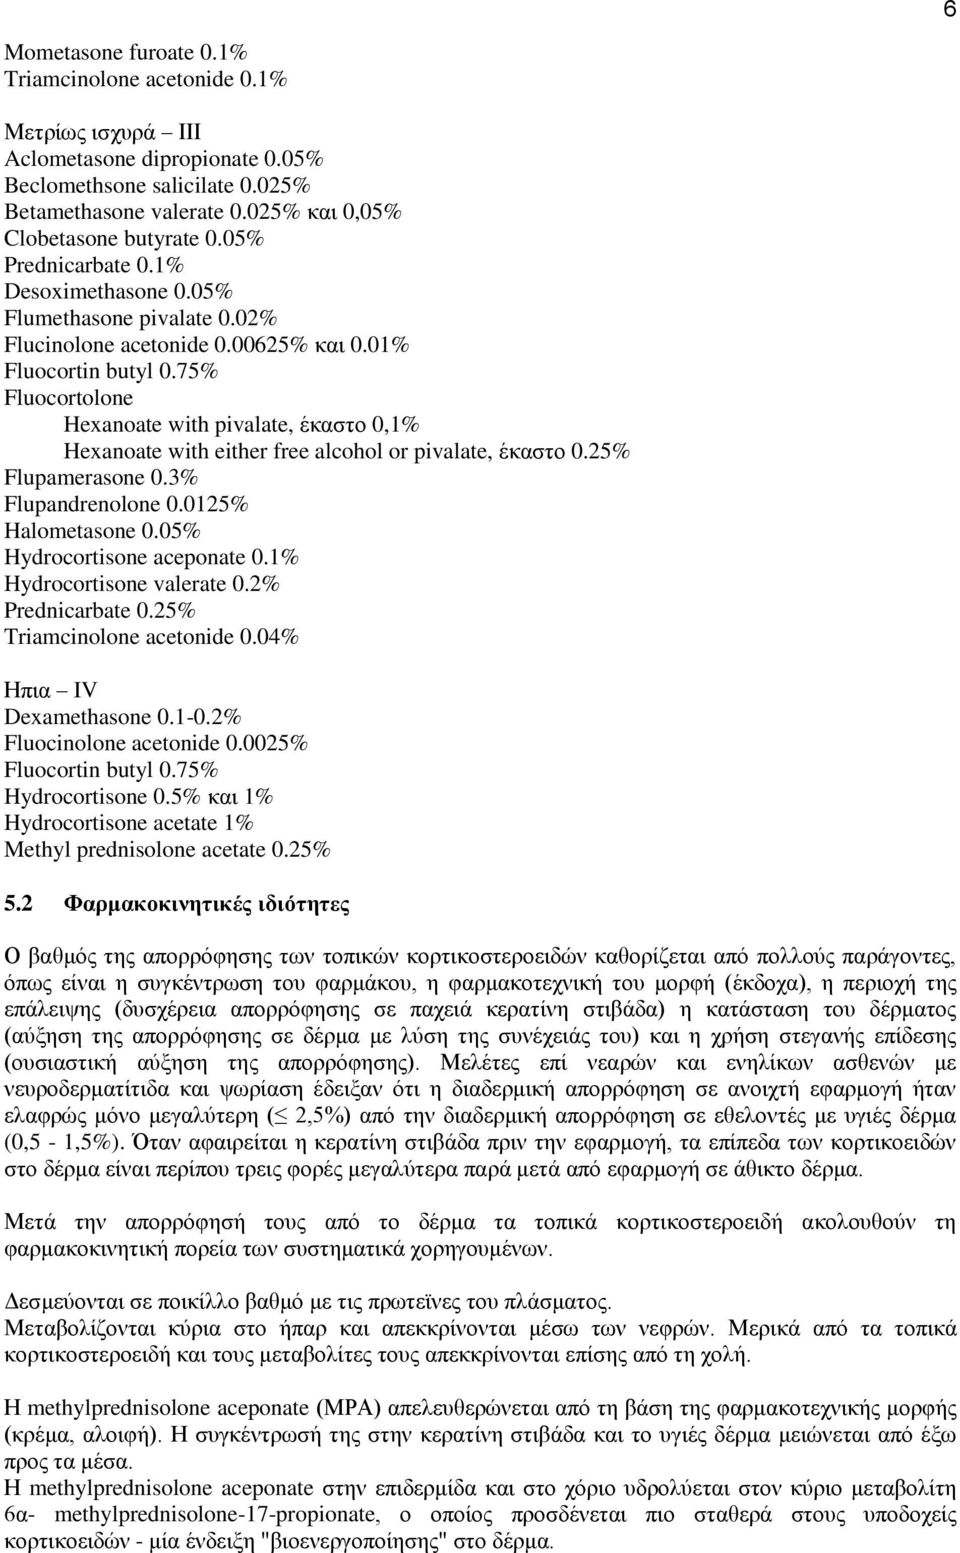 75% Fluocortolone Hexanoate with pivalate, έκαστο 0,1% Hexanoate with either free alcohol or pivalate, έκαστο 0.25% Flupamerasone 0.3% Flupandrenolone 0.0125% Halometasone 0.